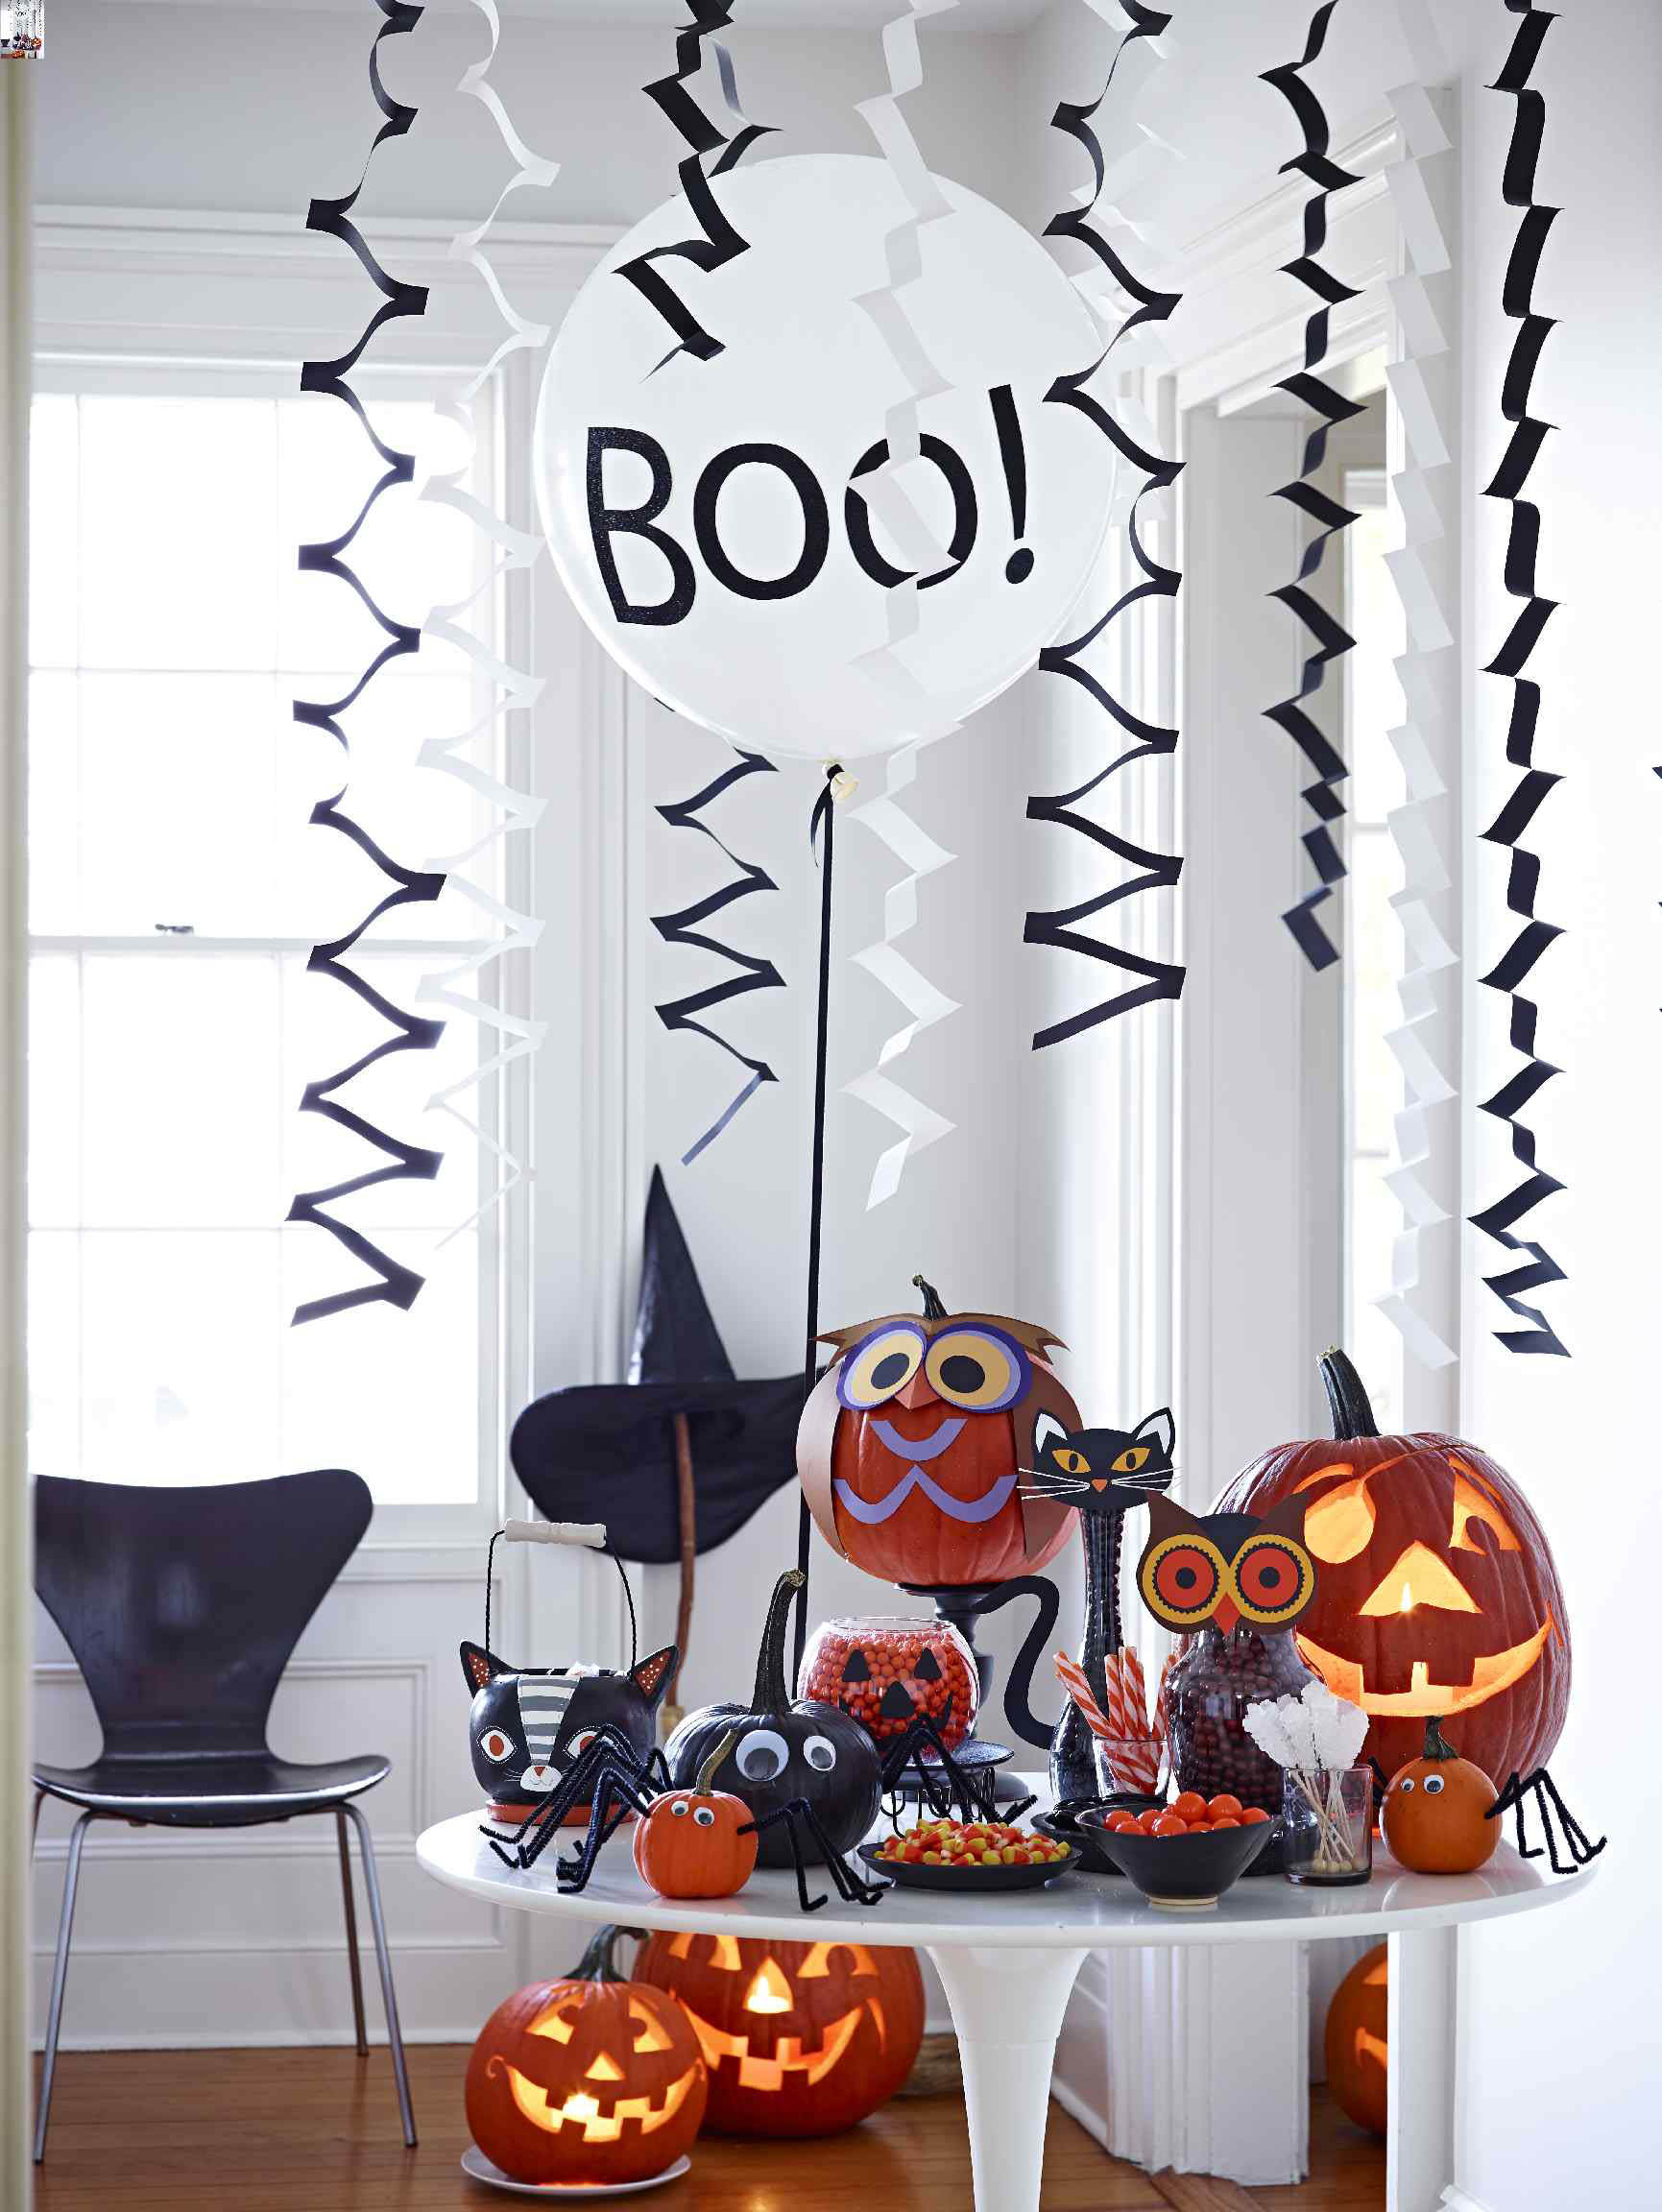 11 Tips for Throwing a Halloween Party for Kids | Better Homes & Gardens